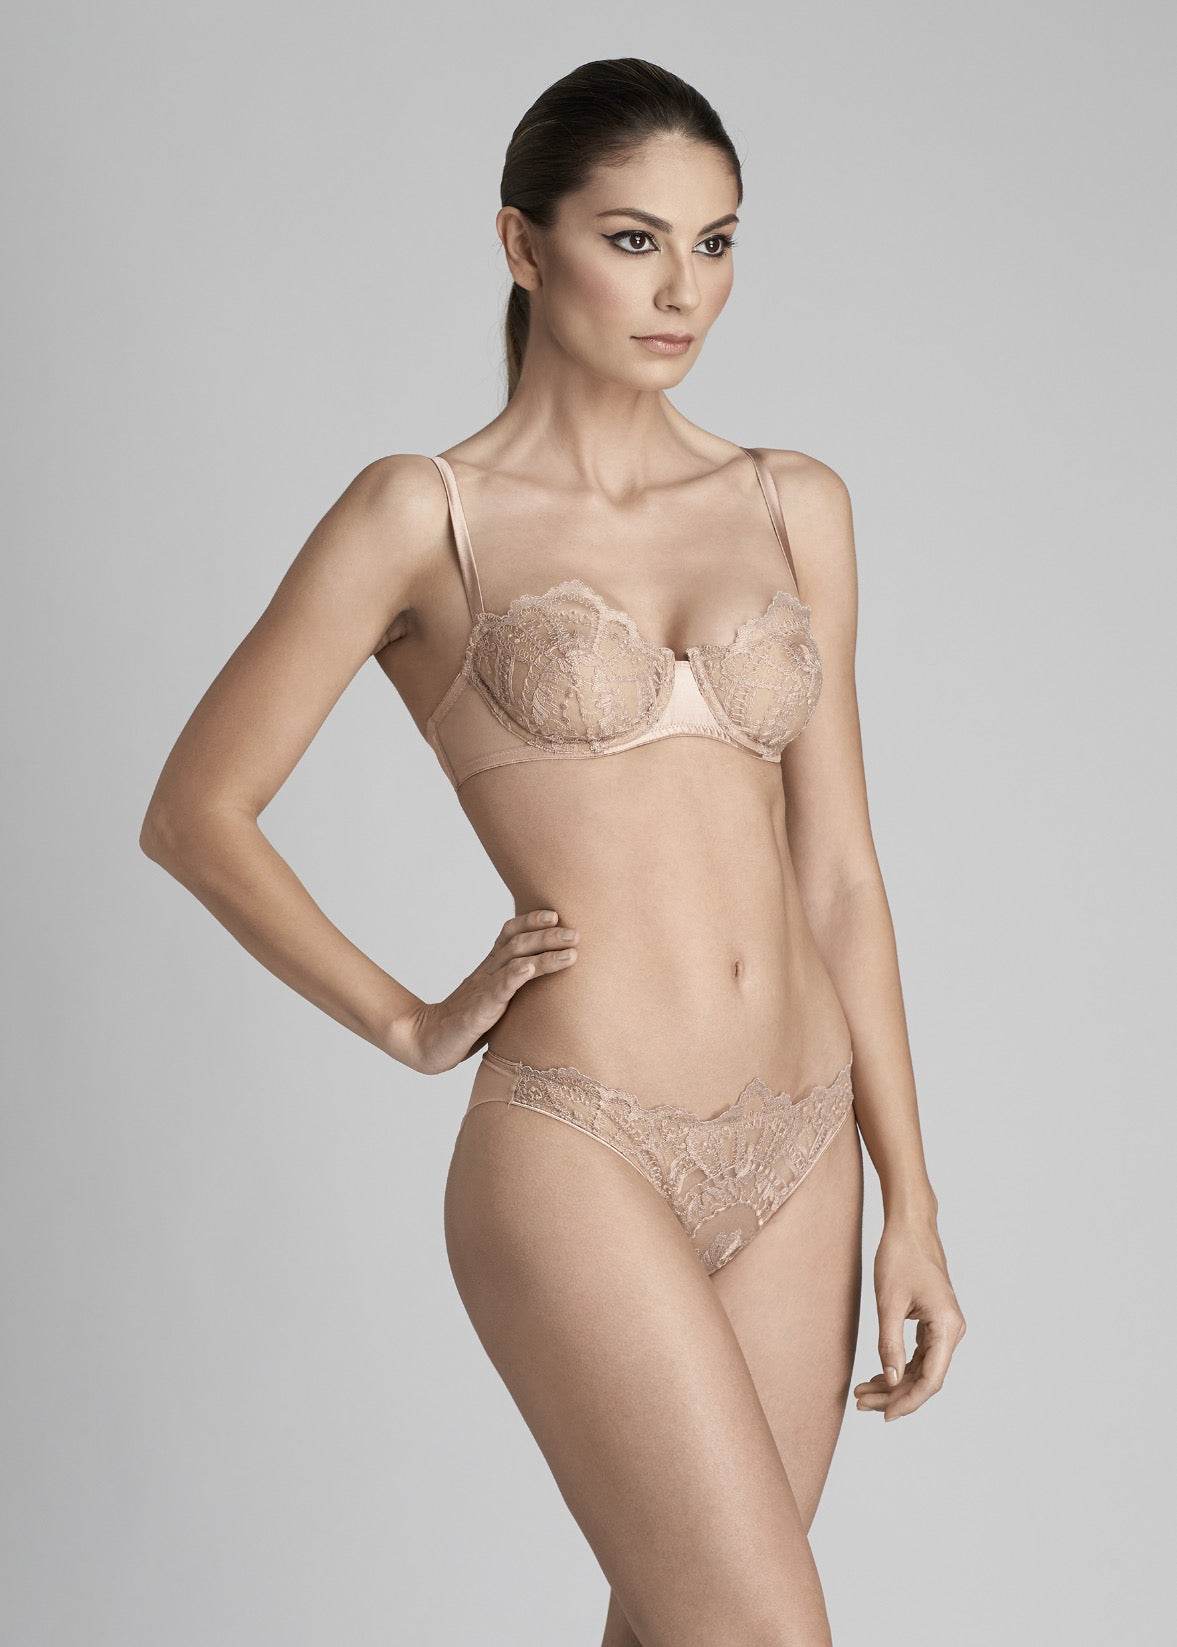 Desert Rose Underwired Balconette Bra in Rose Gold - I.D. Sarrieri